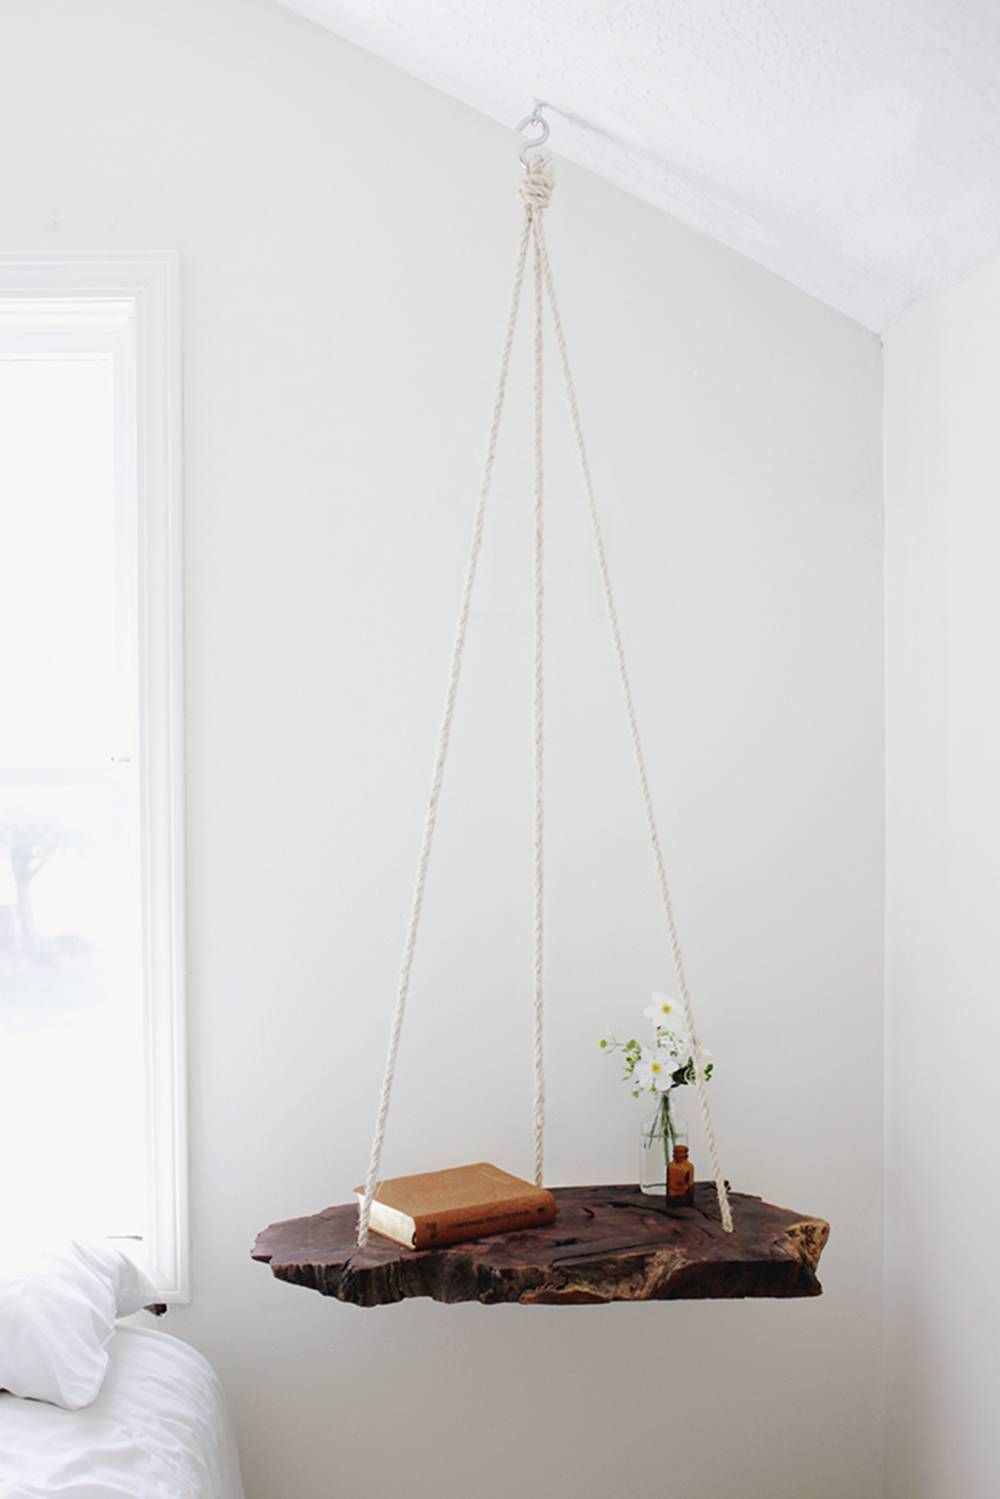 Furniture DIY Projects - Easy Decor Ideas images